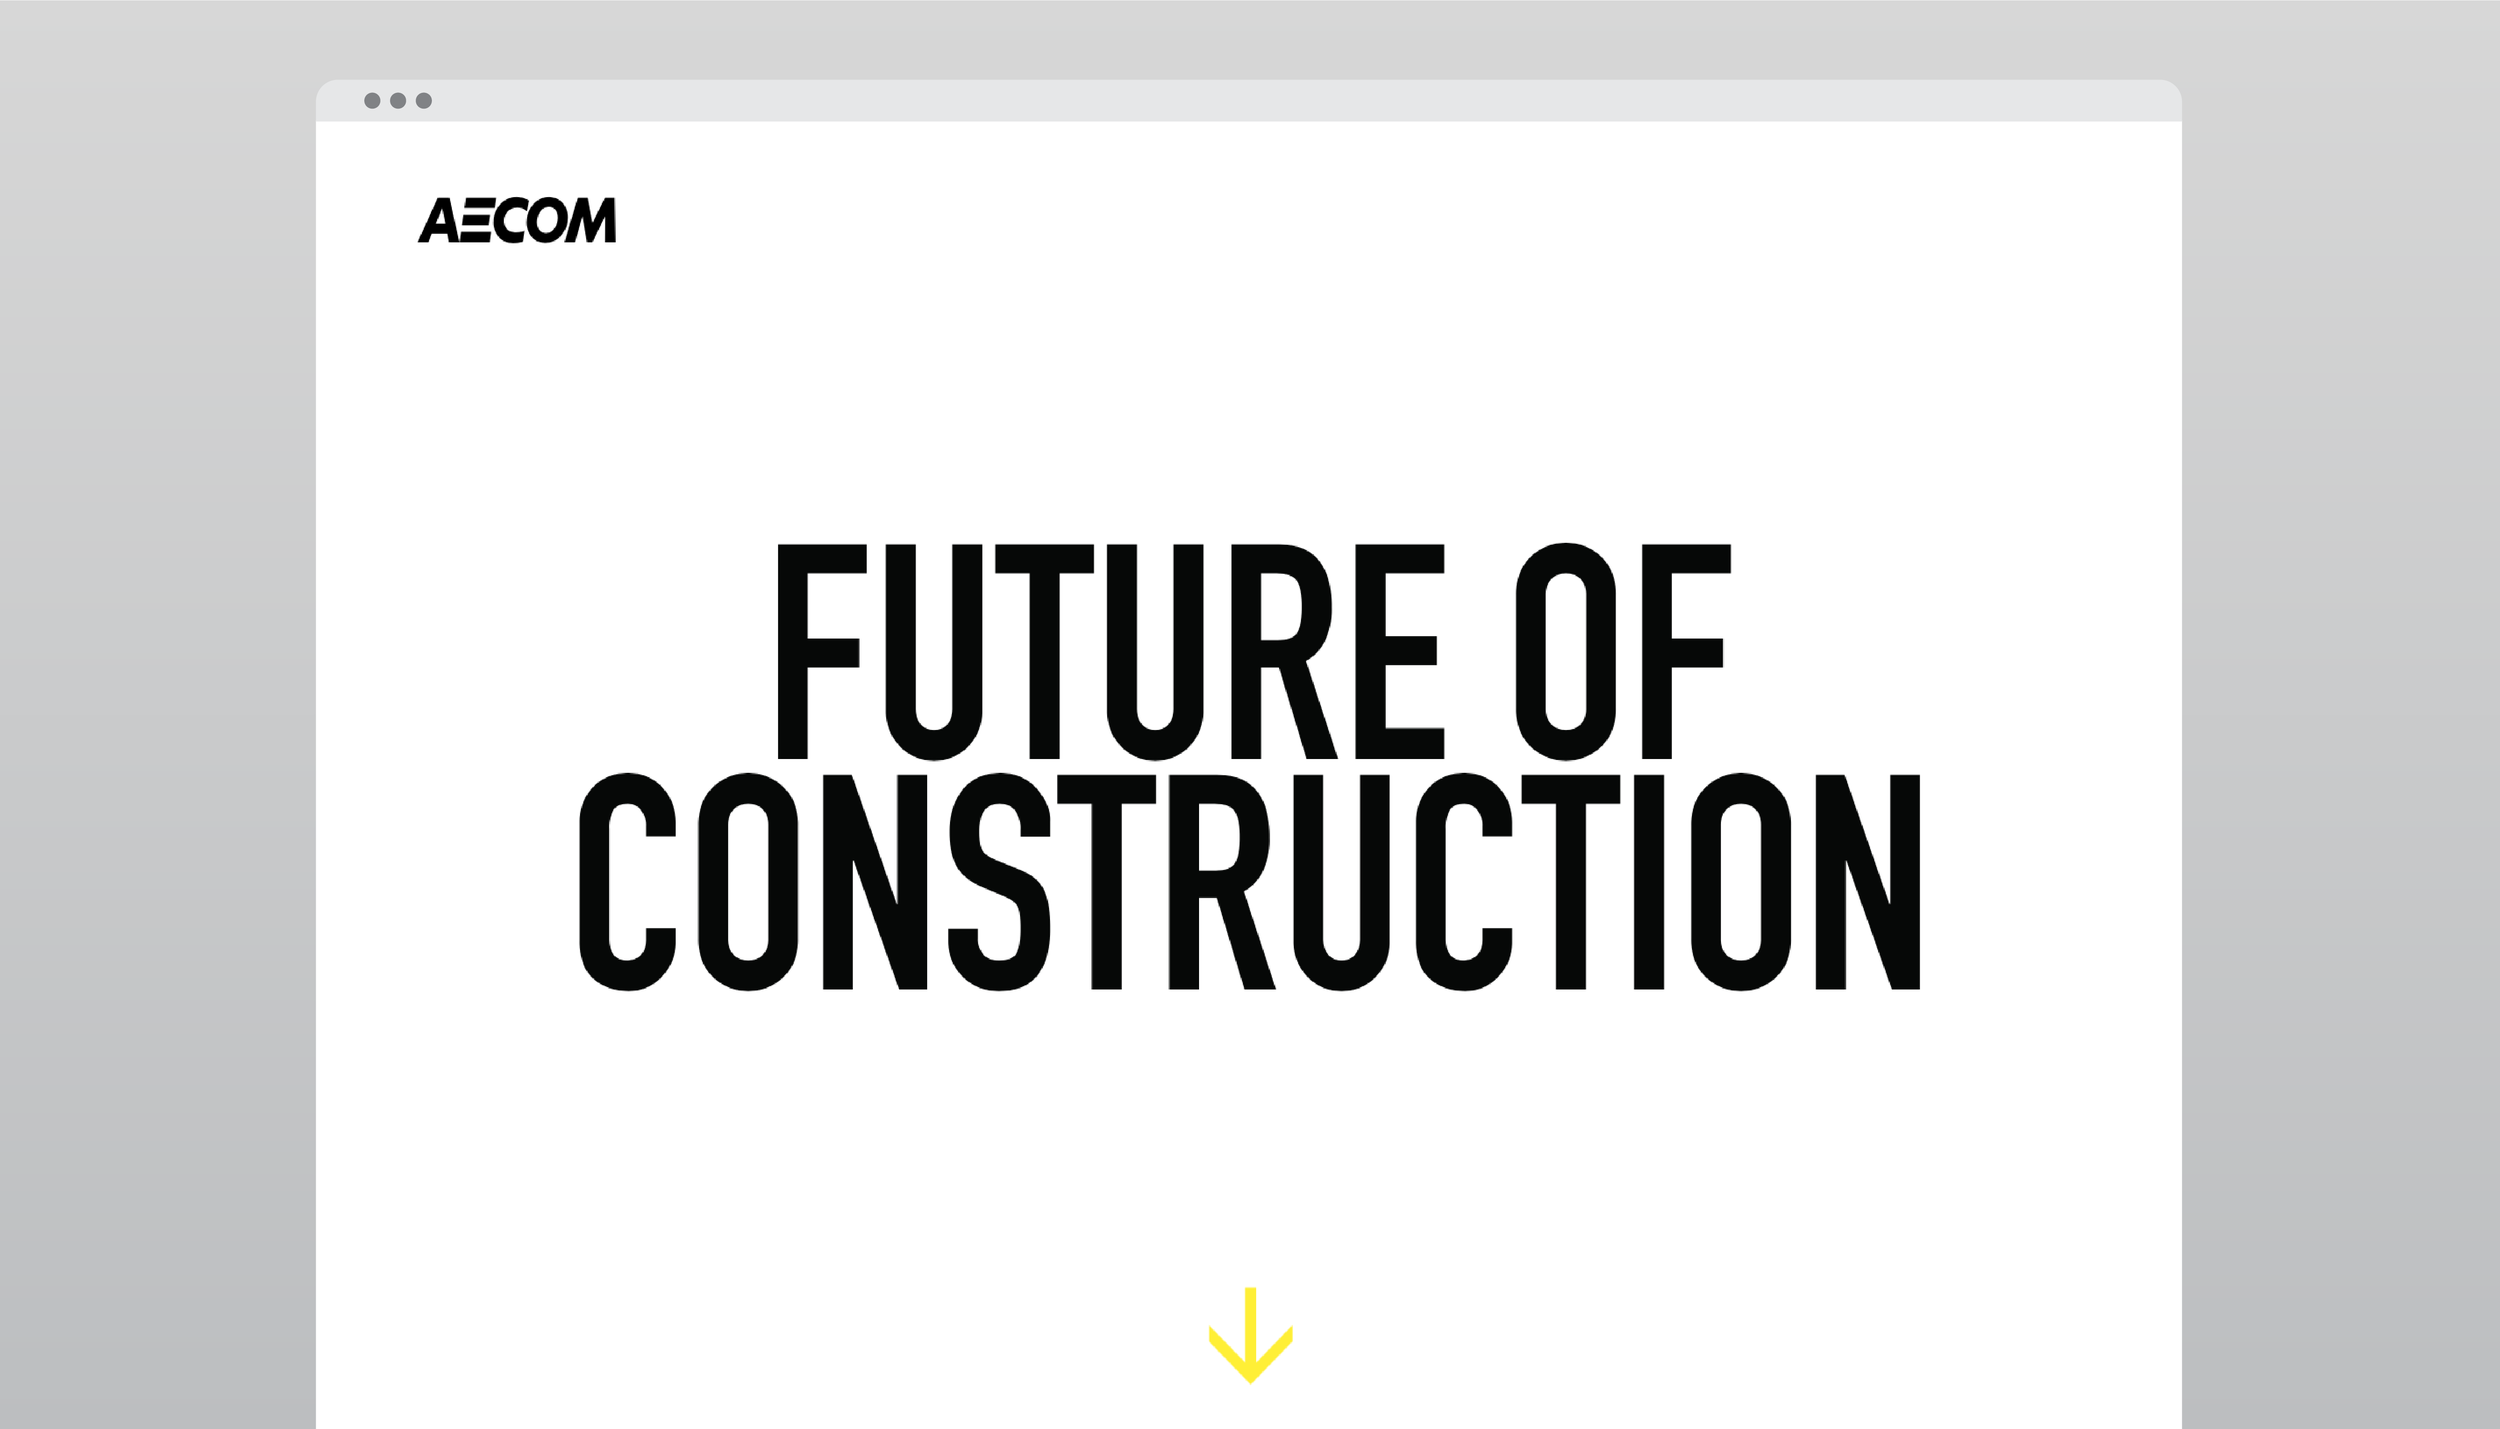 Future of Construction